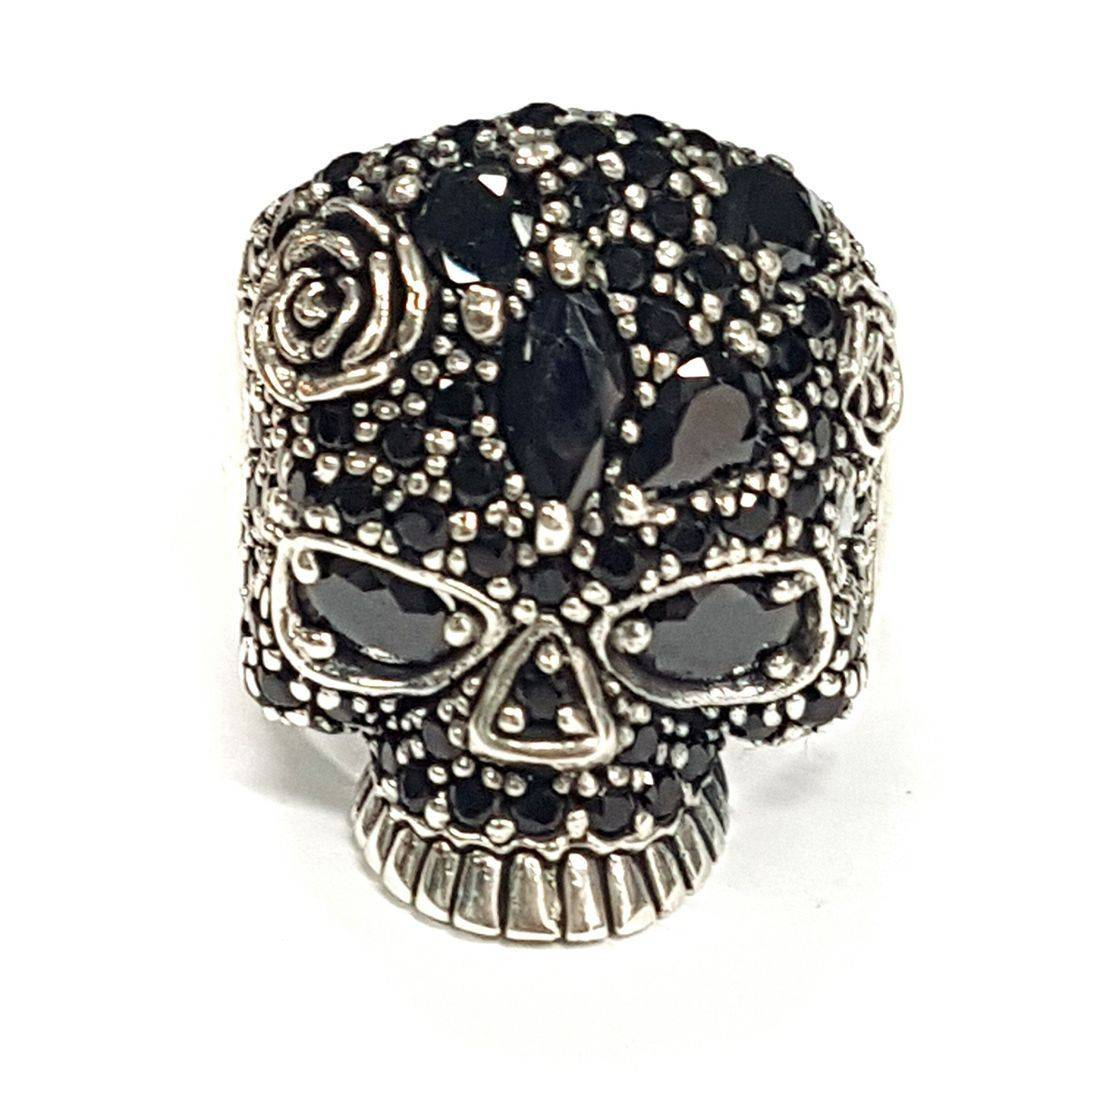 Black Crystal Rose Skull Ring  available at Kazbah online and our Leicester City Centre shop